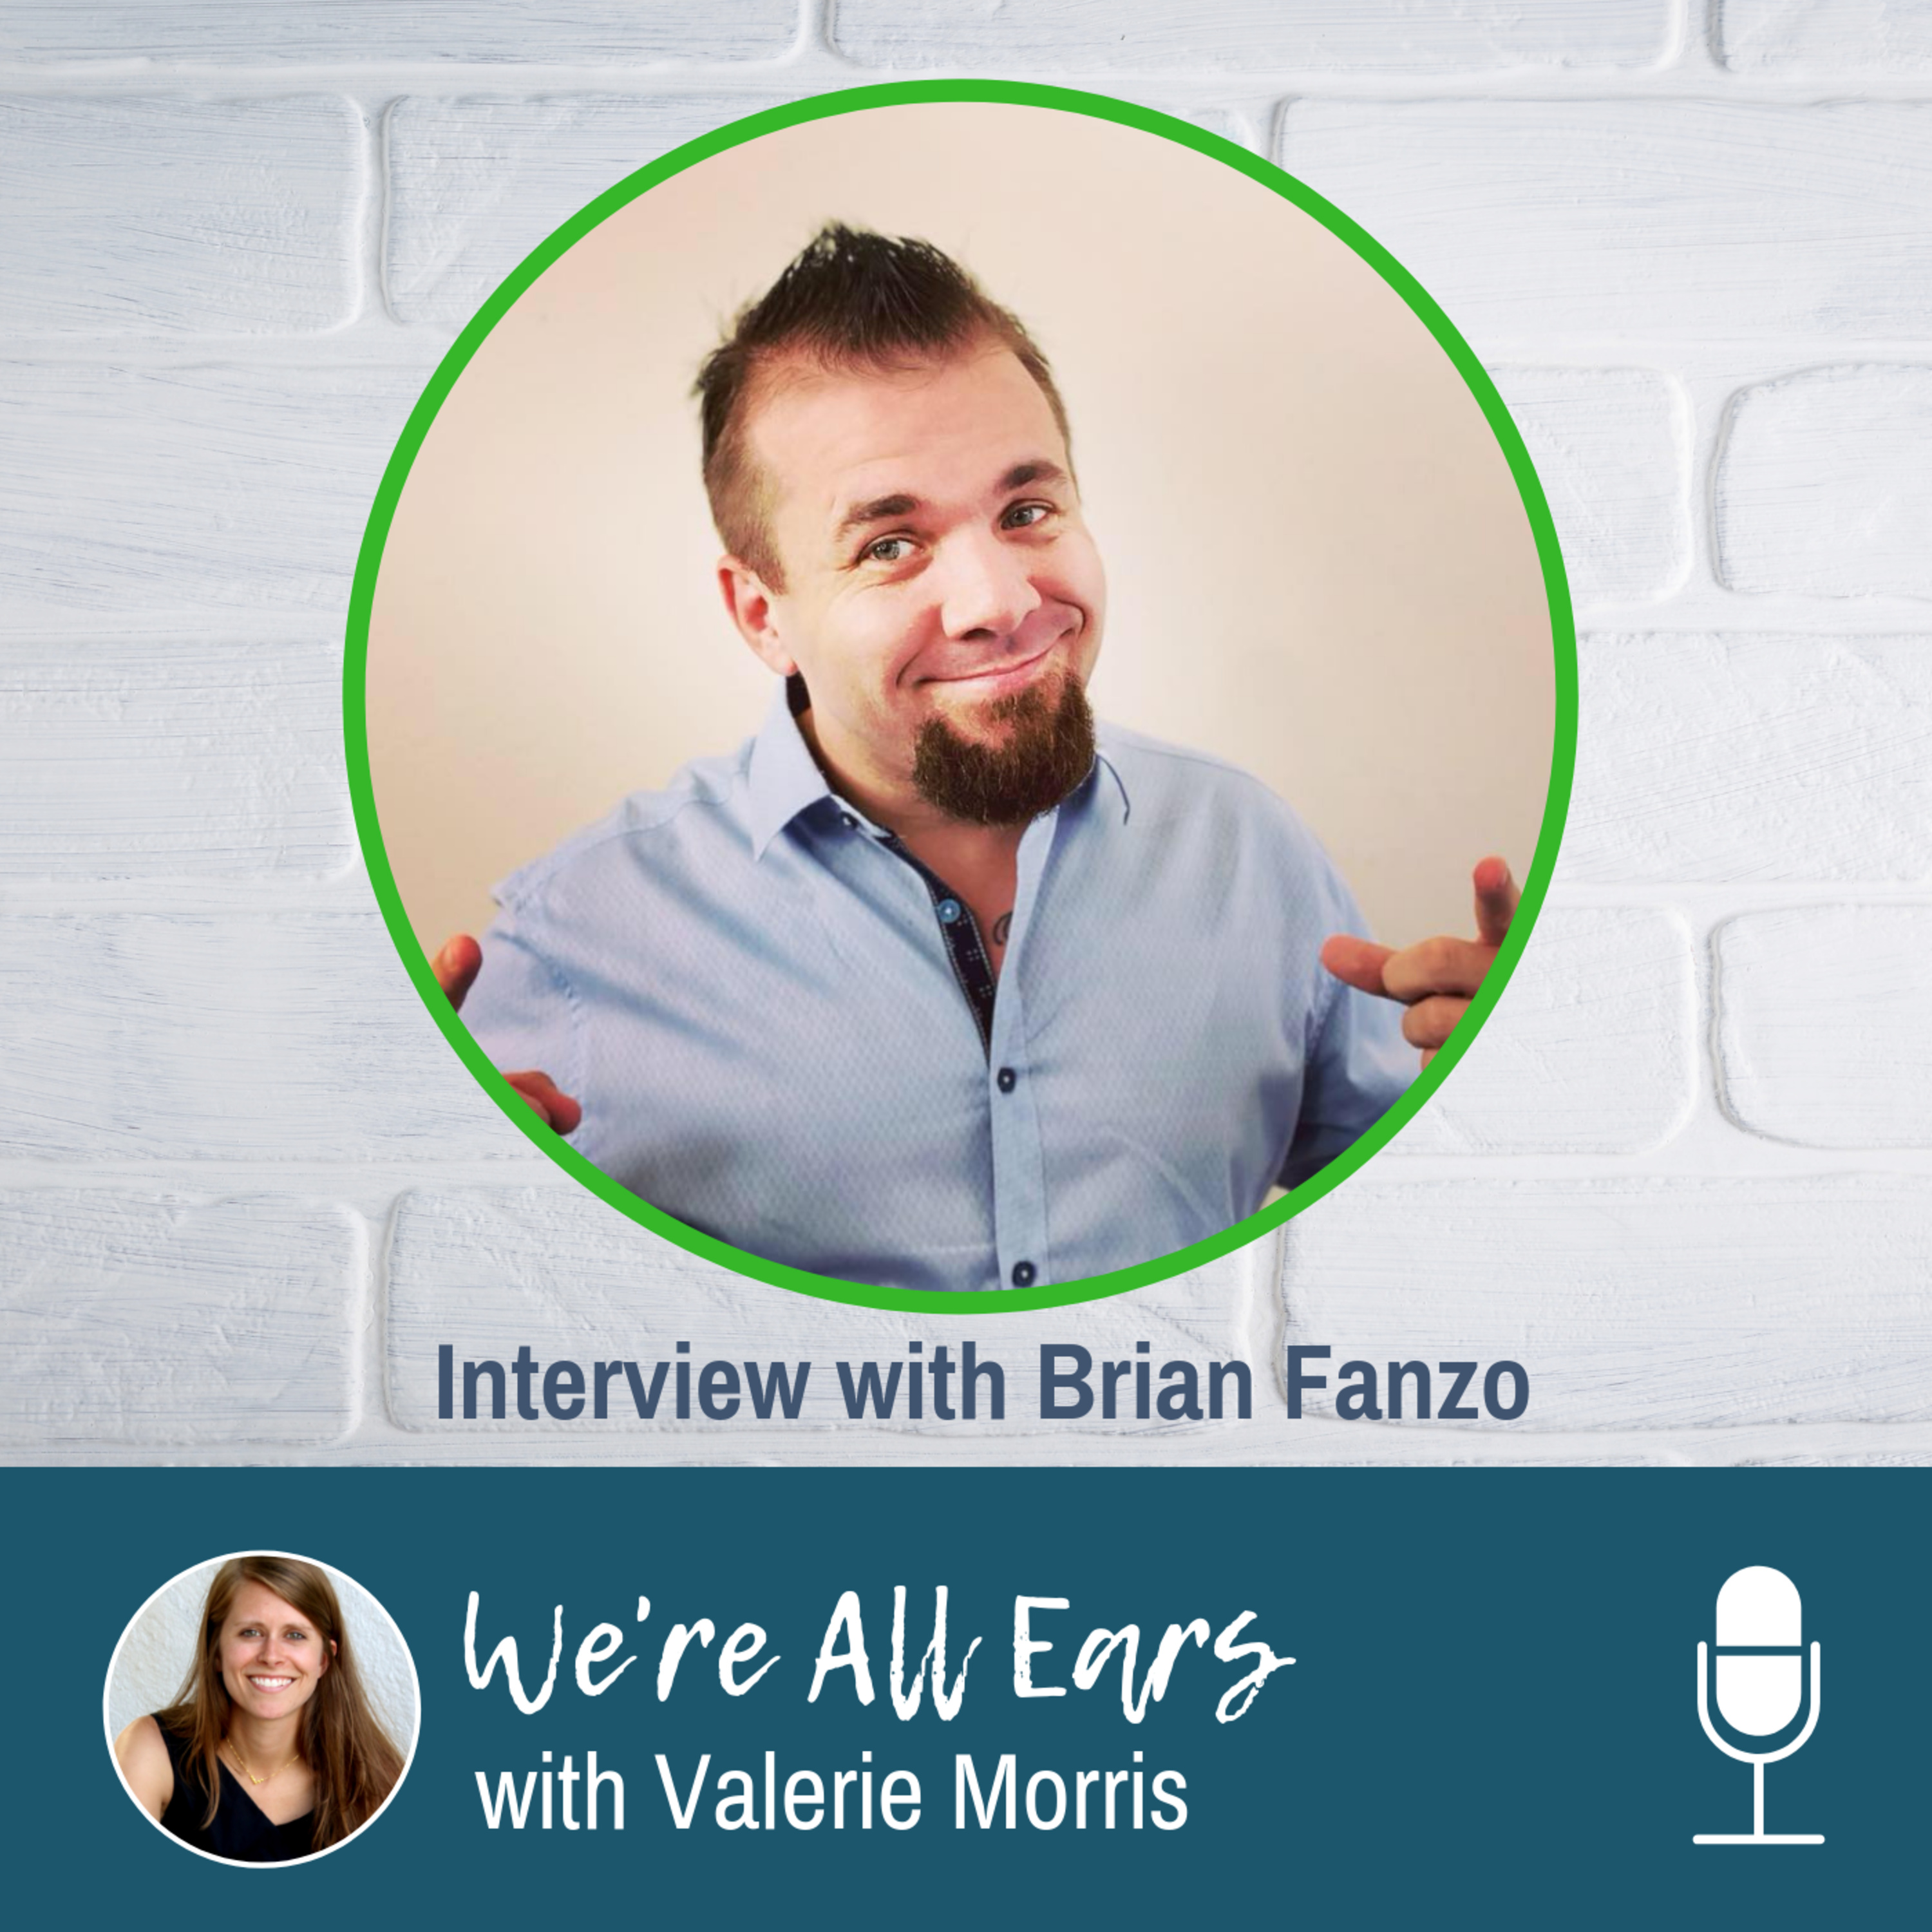 We're All Ears Interview Series with Brian Fanzo